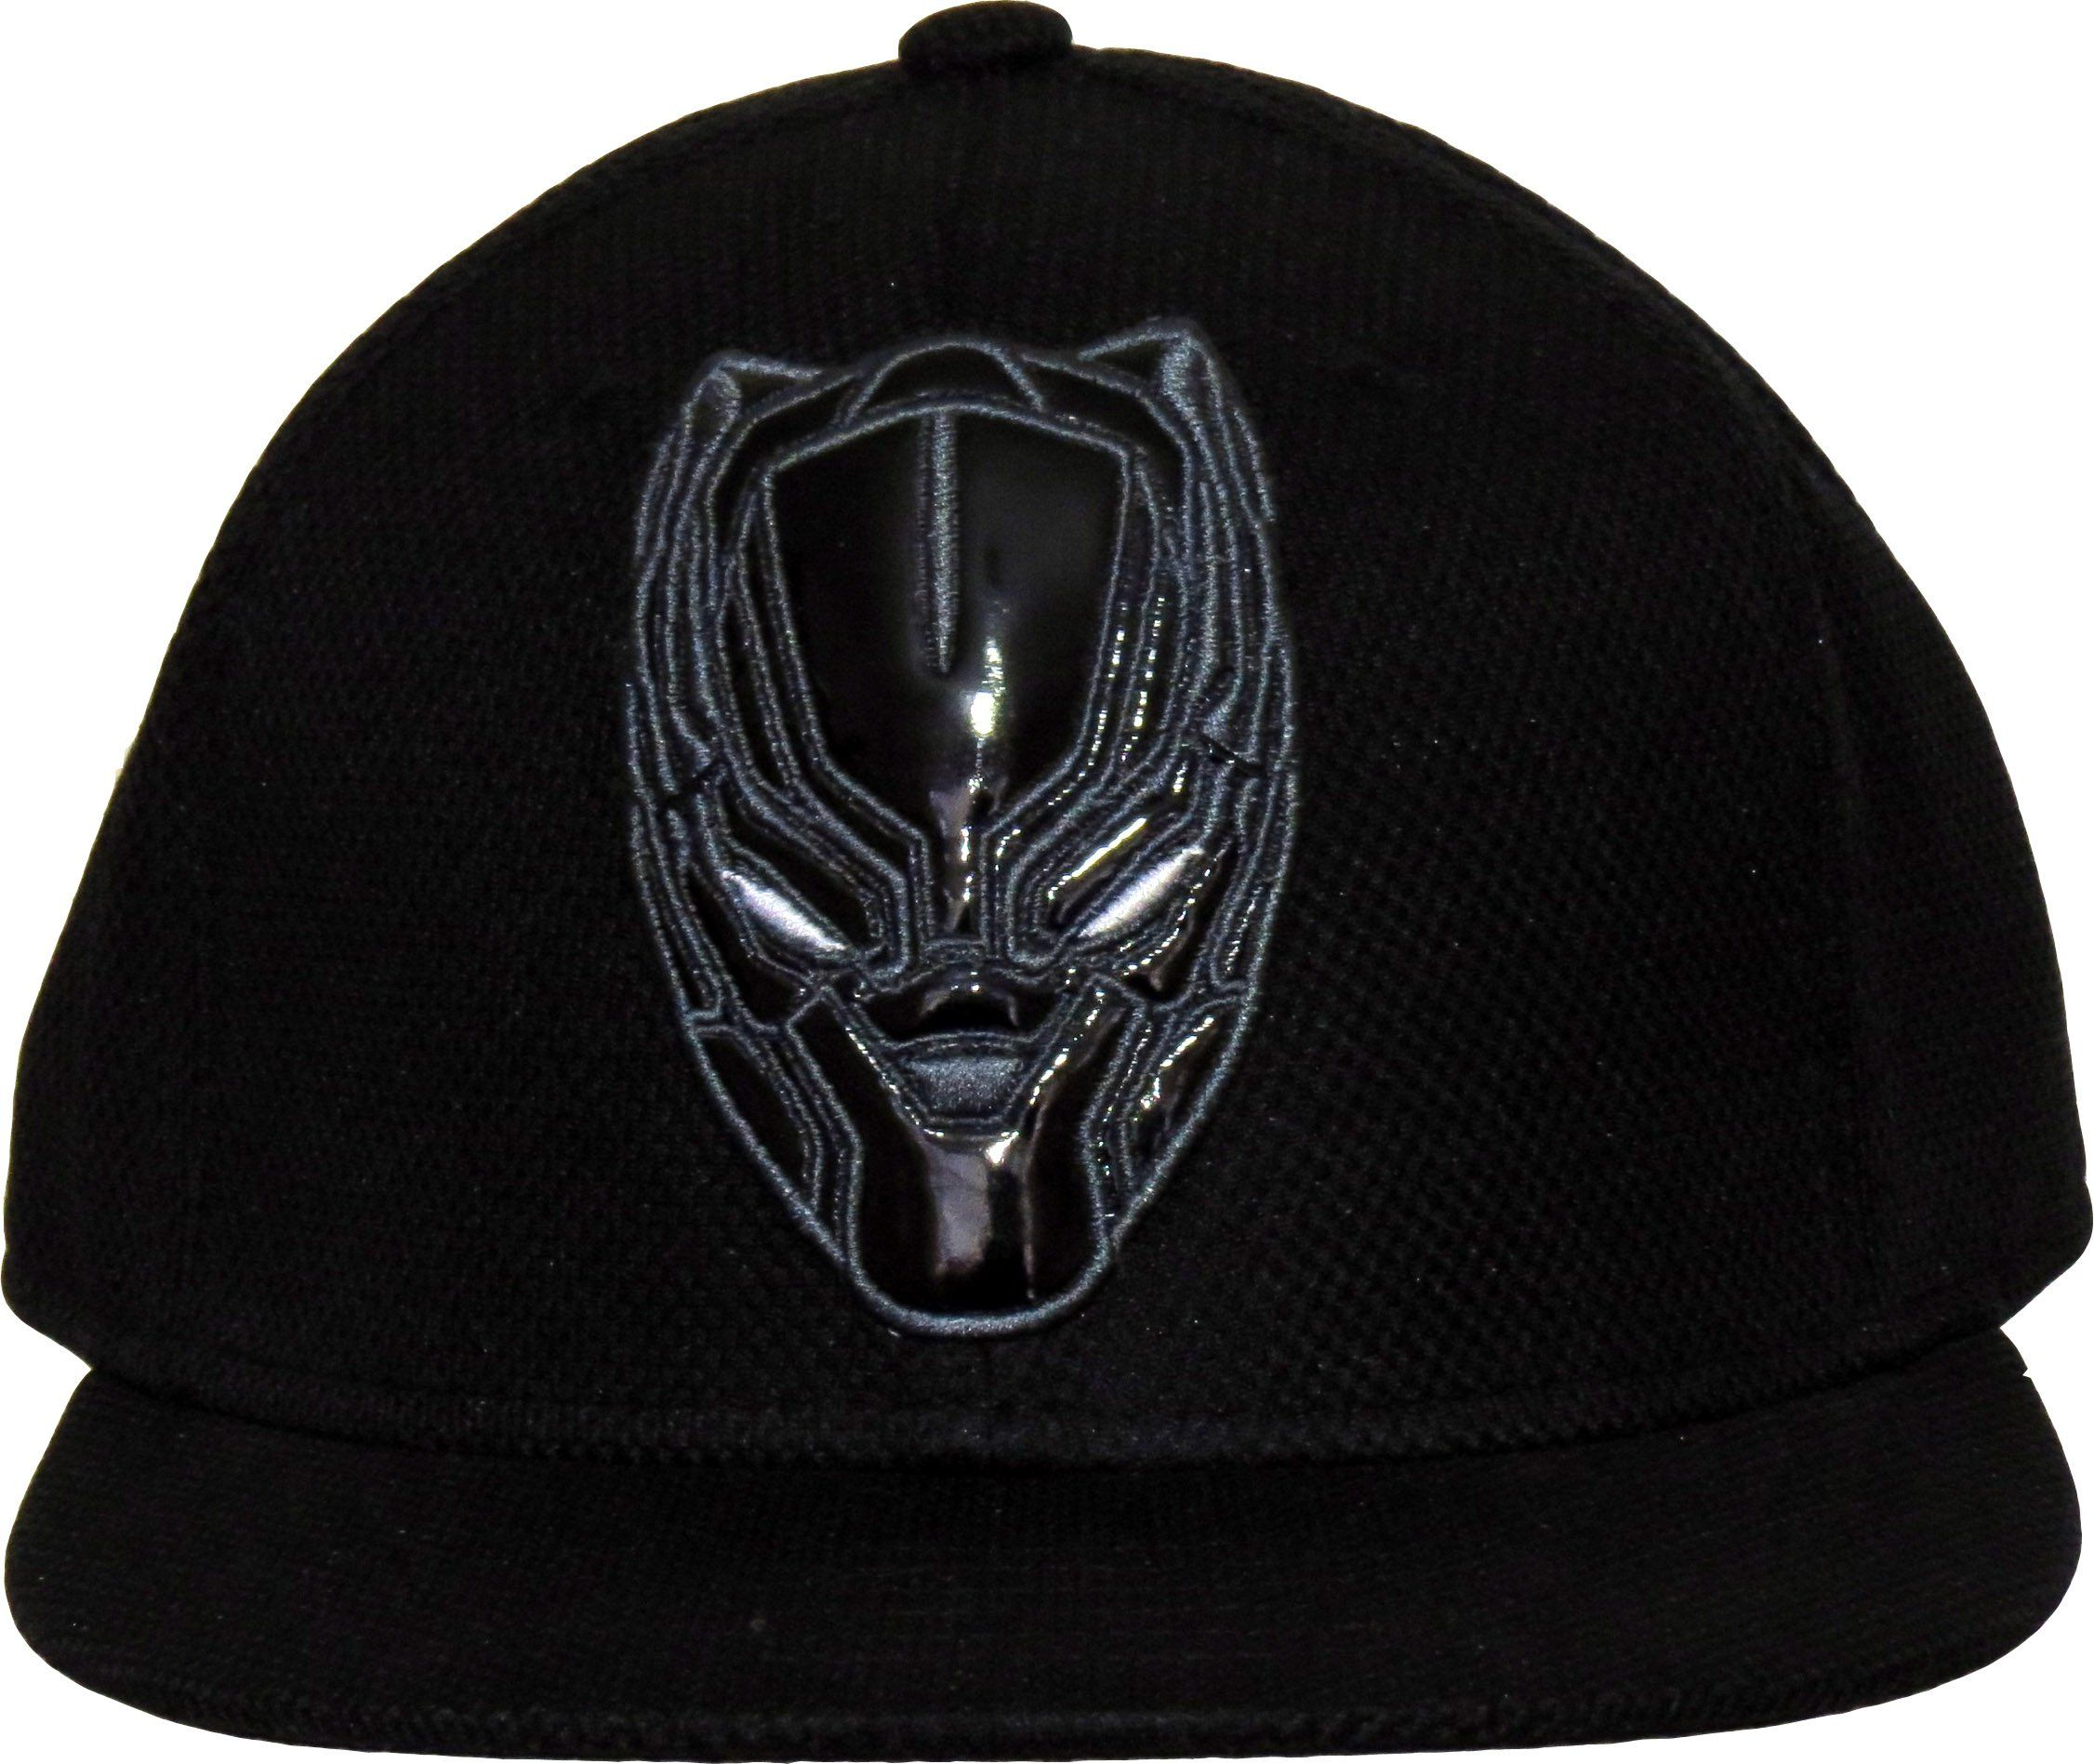 0e14a7773bf Marvel Comics Black Panther Snapback Cap. Black with the Black Panther Mask  front logo